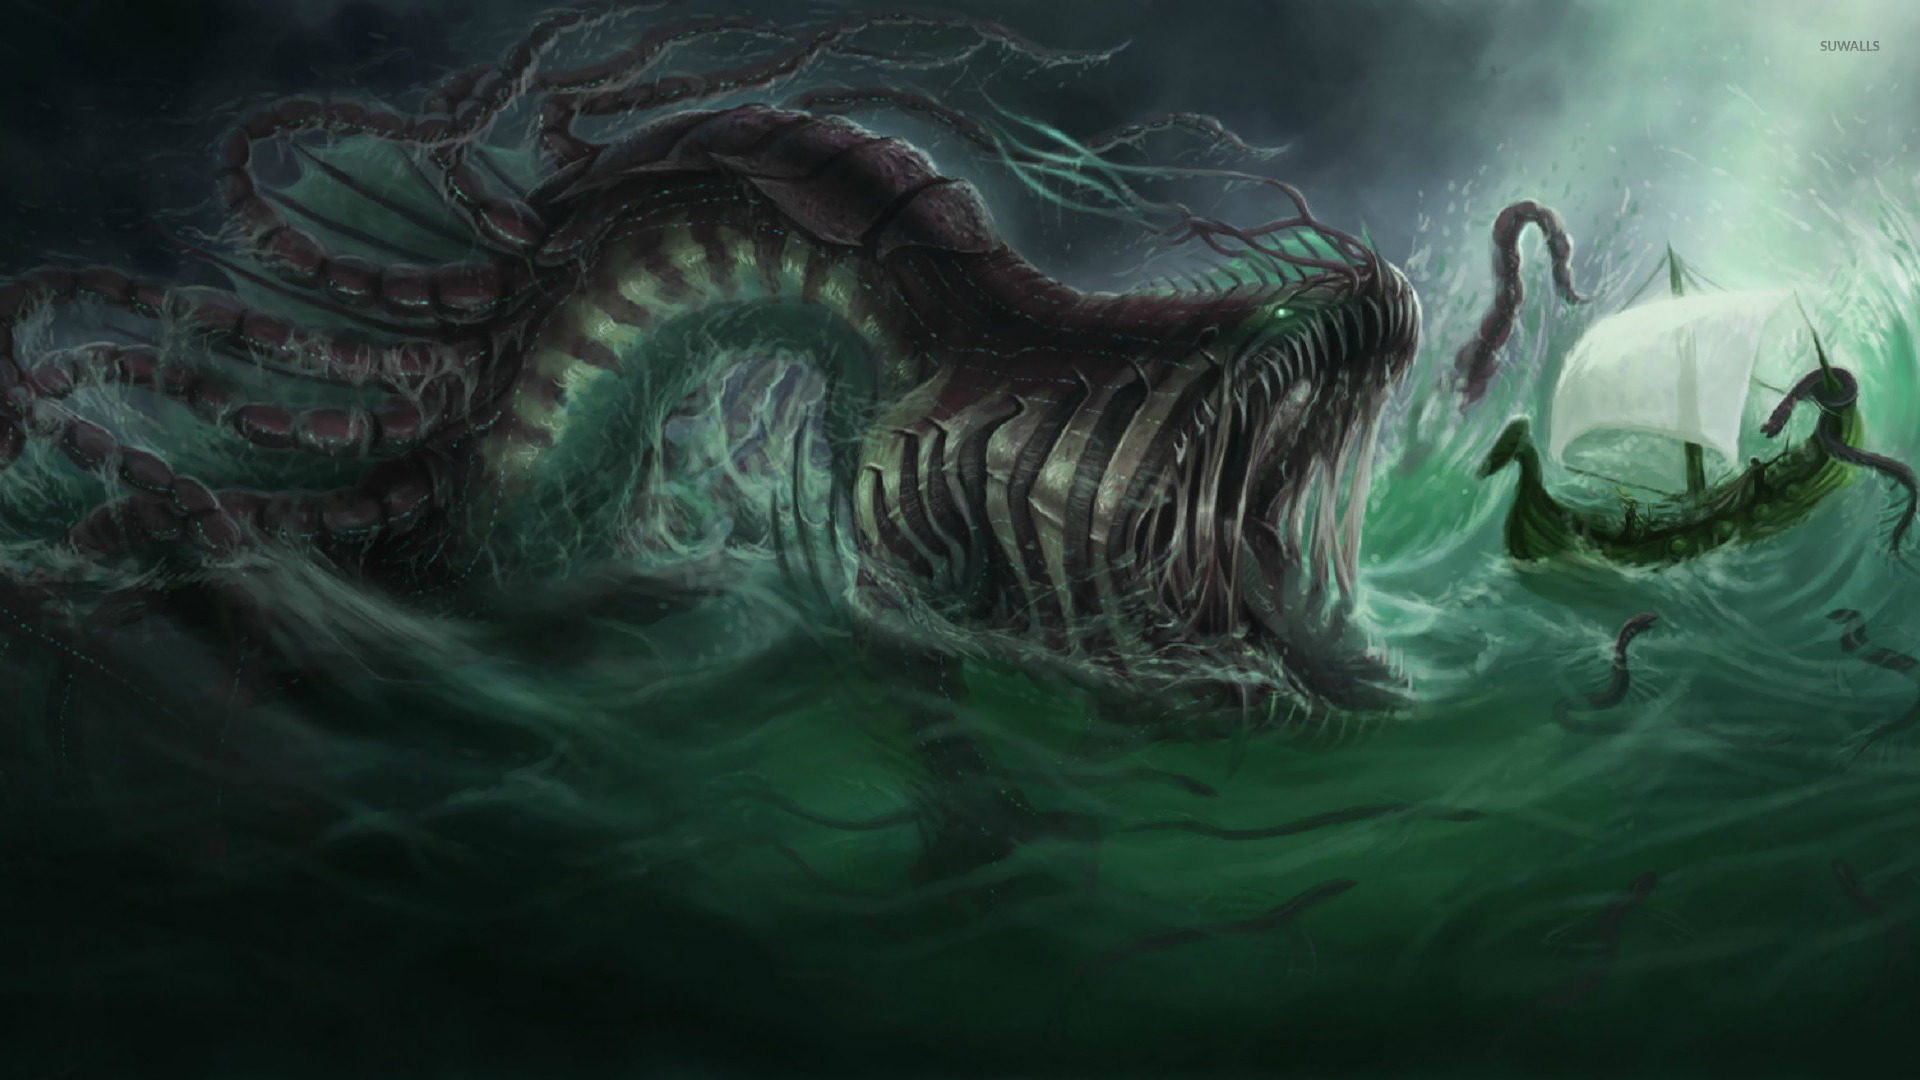 Sea monster 2 wallpaper fantasy wallpapers 16428 sea monster 2 wallpaper voltagebd Images